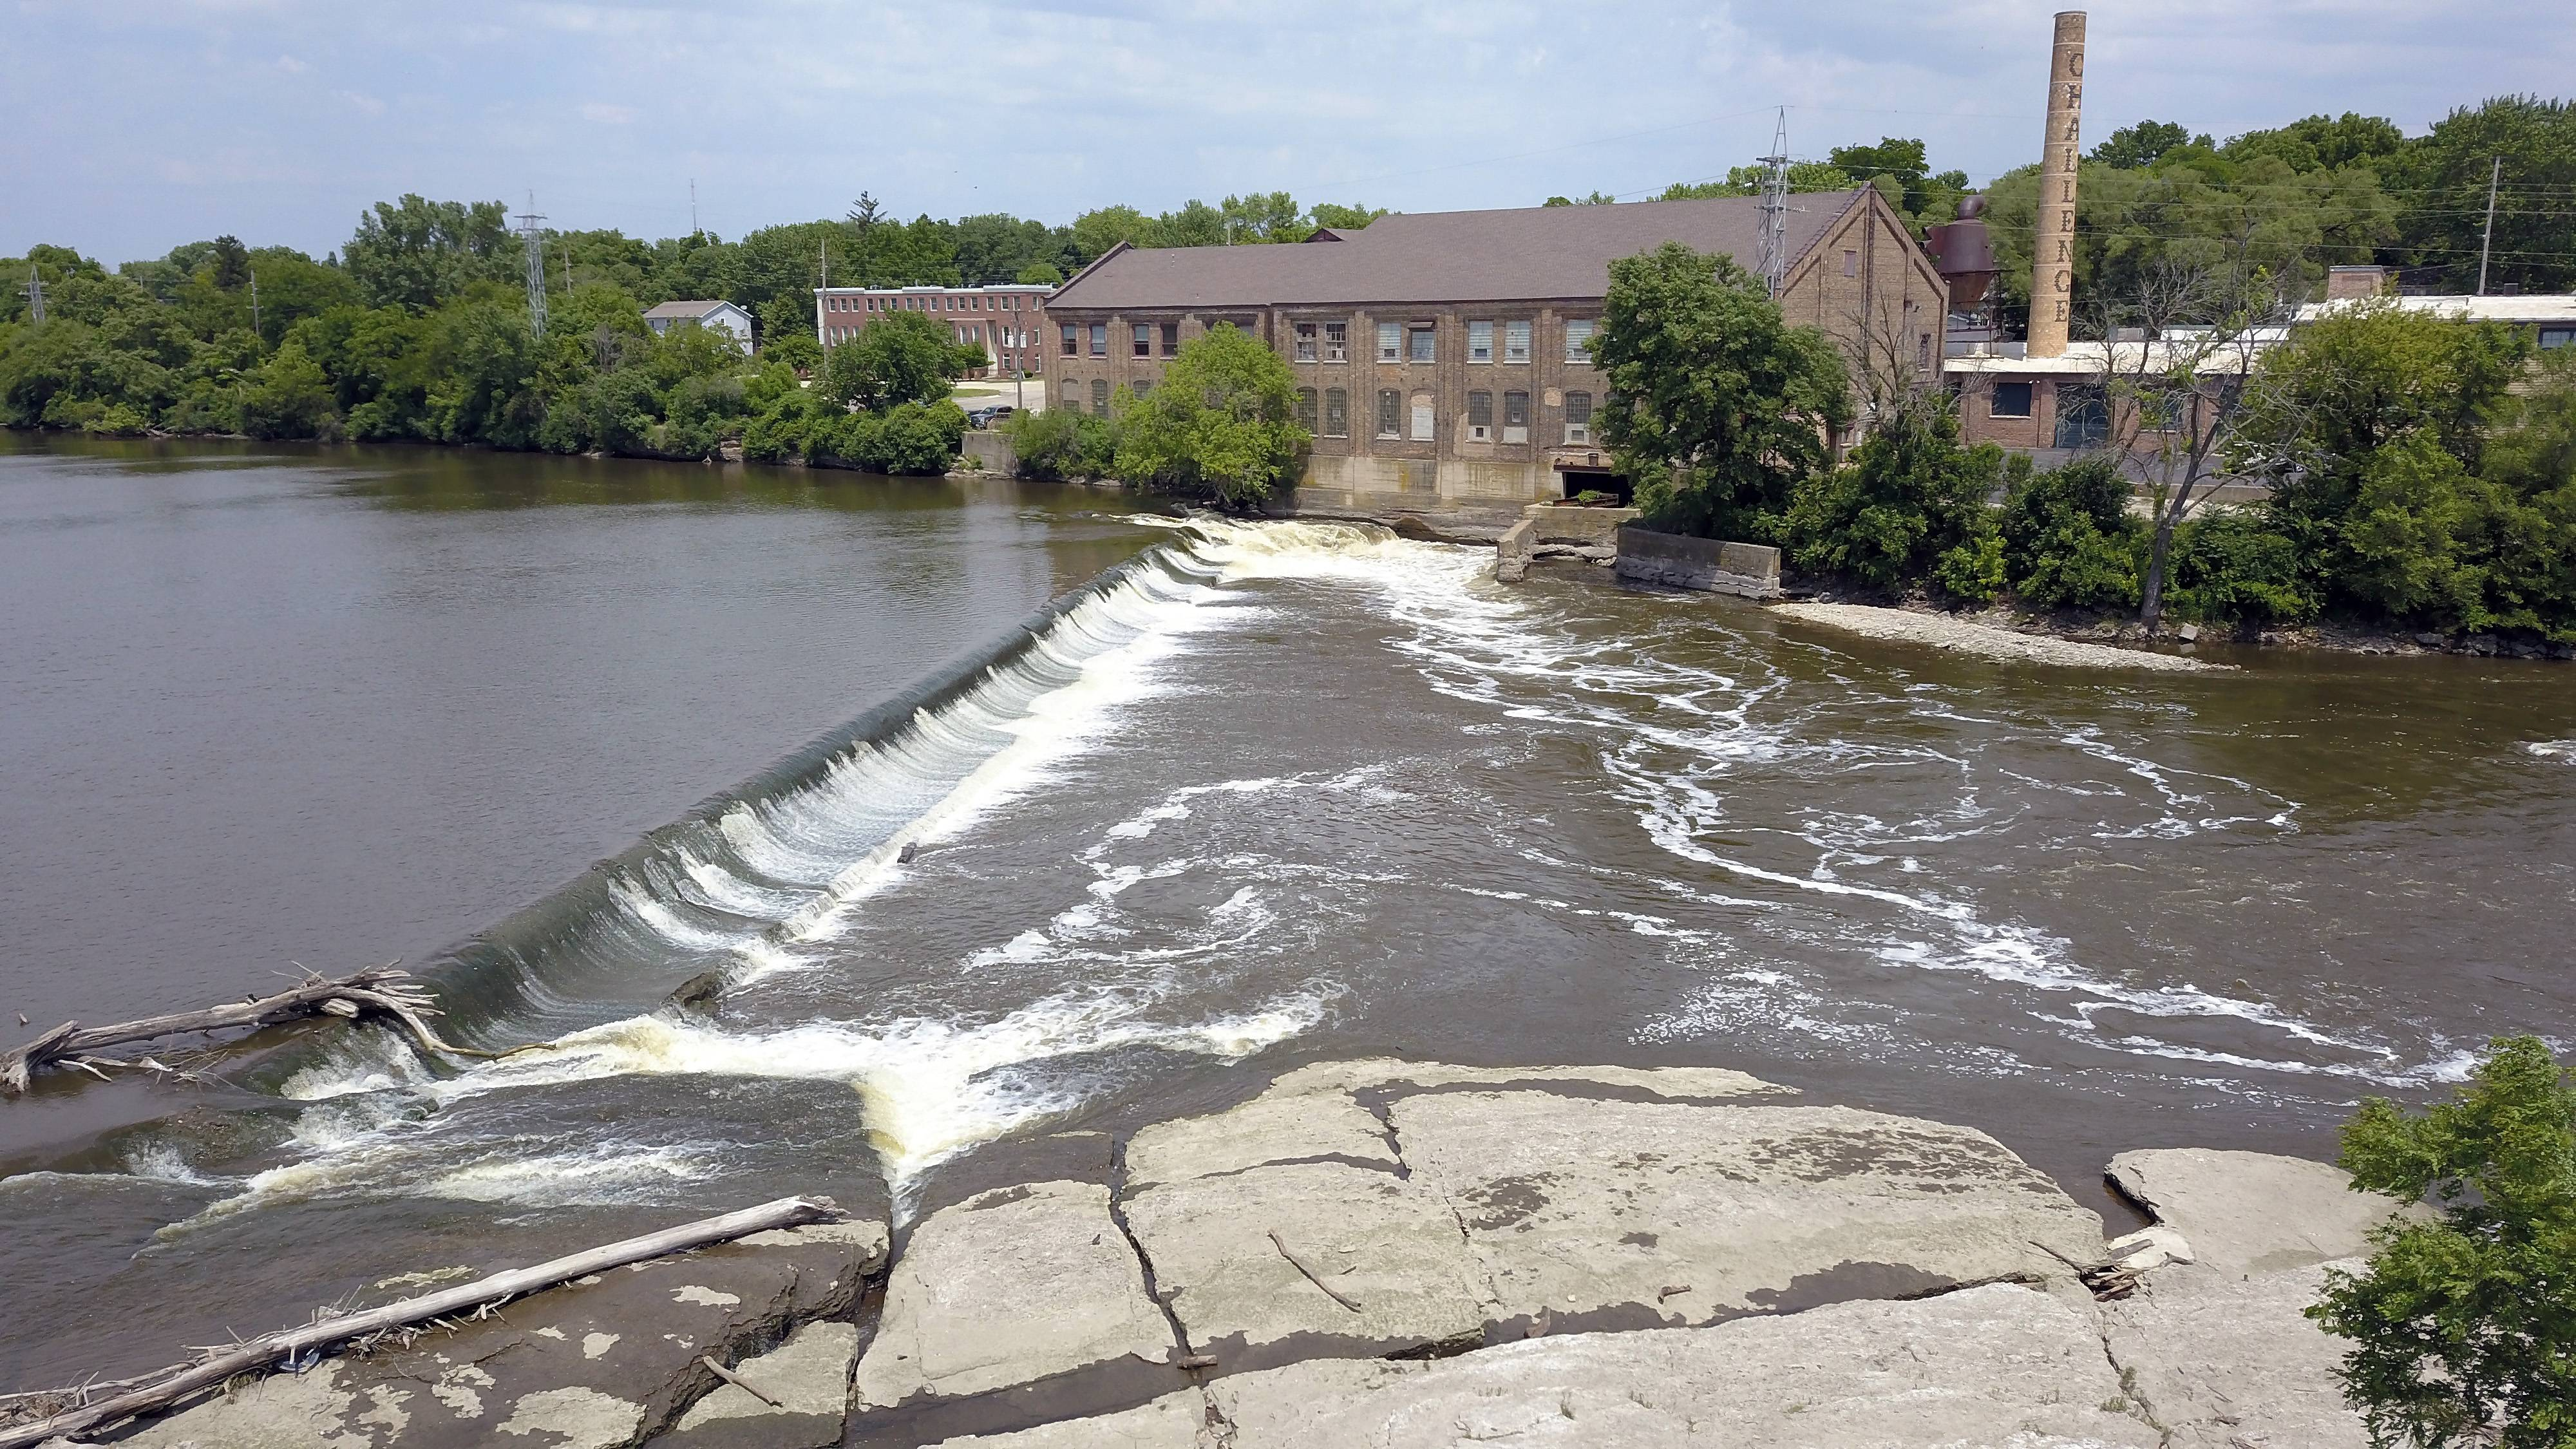 Batavia has been told it can't repair the dam north of the Batavia Government Center and Depot Pond. And research shows the city, not the state, owns the dam.